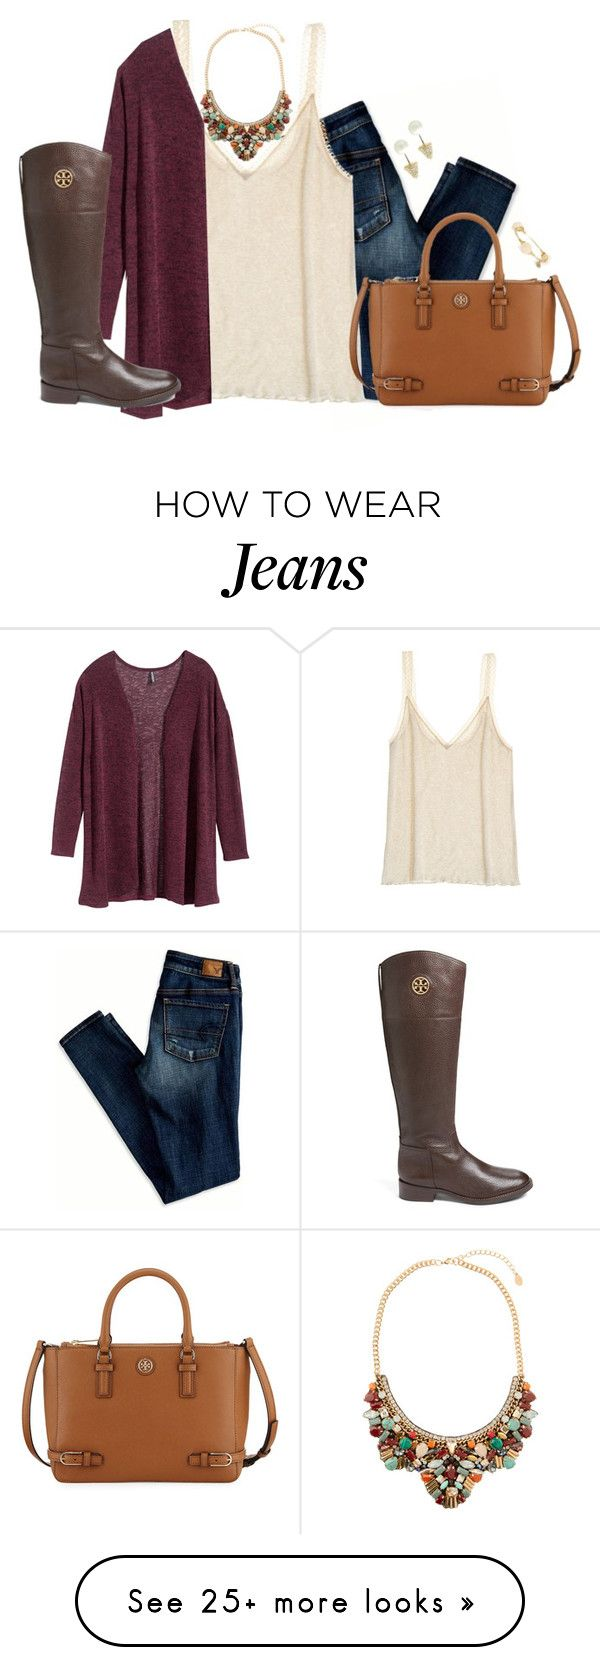 """↬ move f o w a r d ↫"" by kaley-ii on Polyvore featuring moda, American Eagle Outfitters, Calypso St. Barth, H&M, Accessorize, Tory Burch, Bourbon and Boweties e CC SKYE"